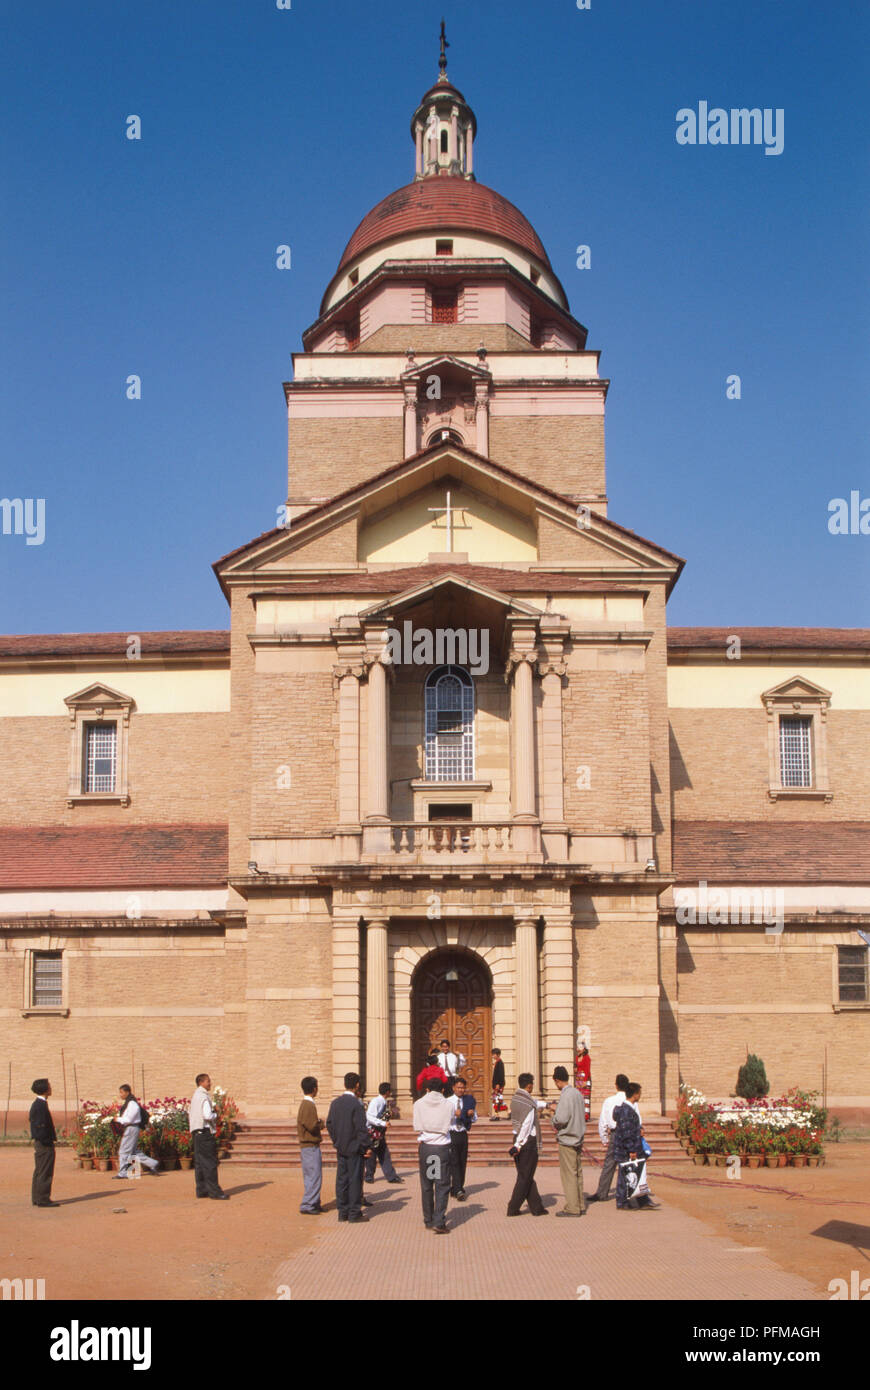 India, New Delhi, Neo-Classical Cathedral Church of the Redemption, designed by architect Henry Alexander Medd, red coloured, tall central dome, ornate wooden door, flower pots beside entrance, people standing. - Stock Image